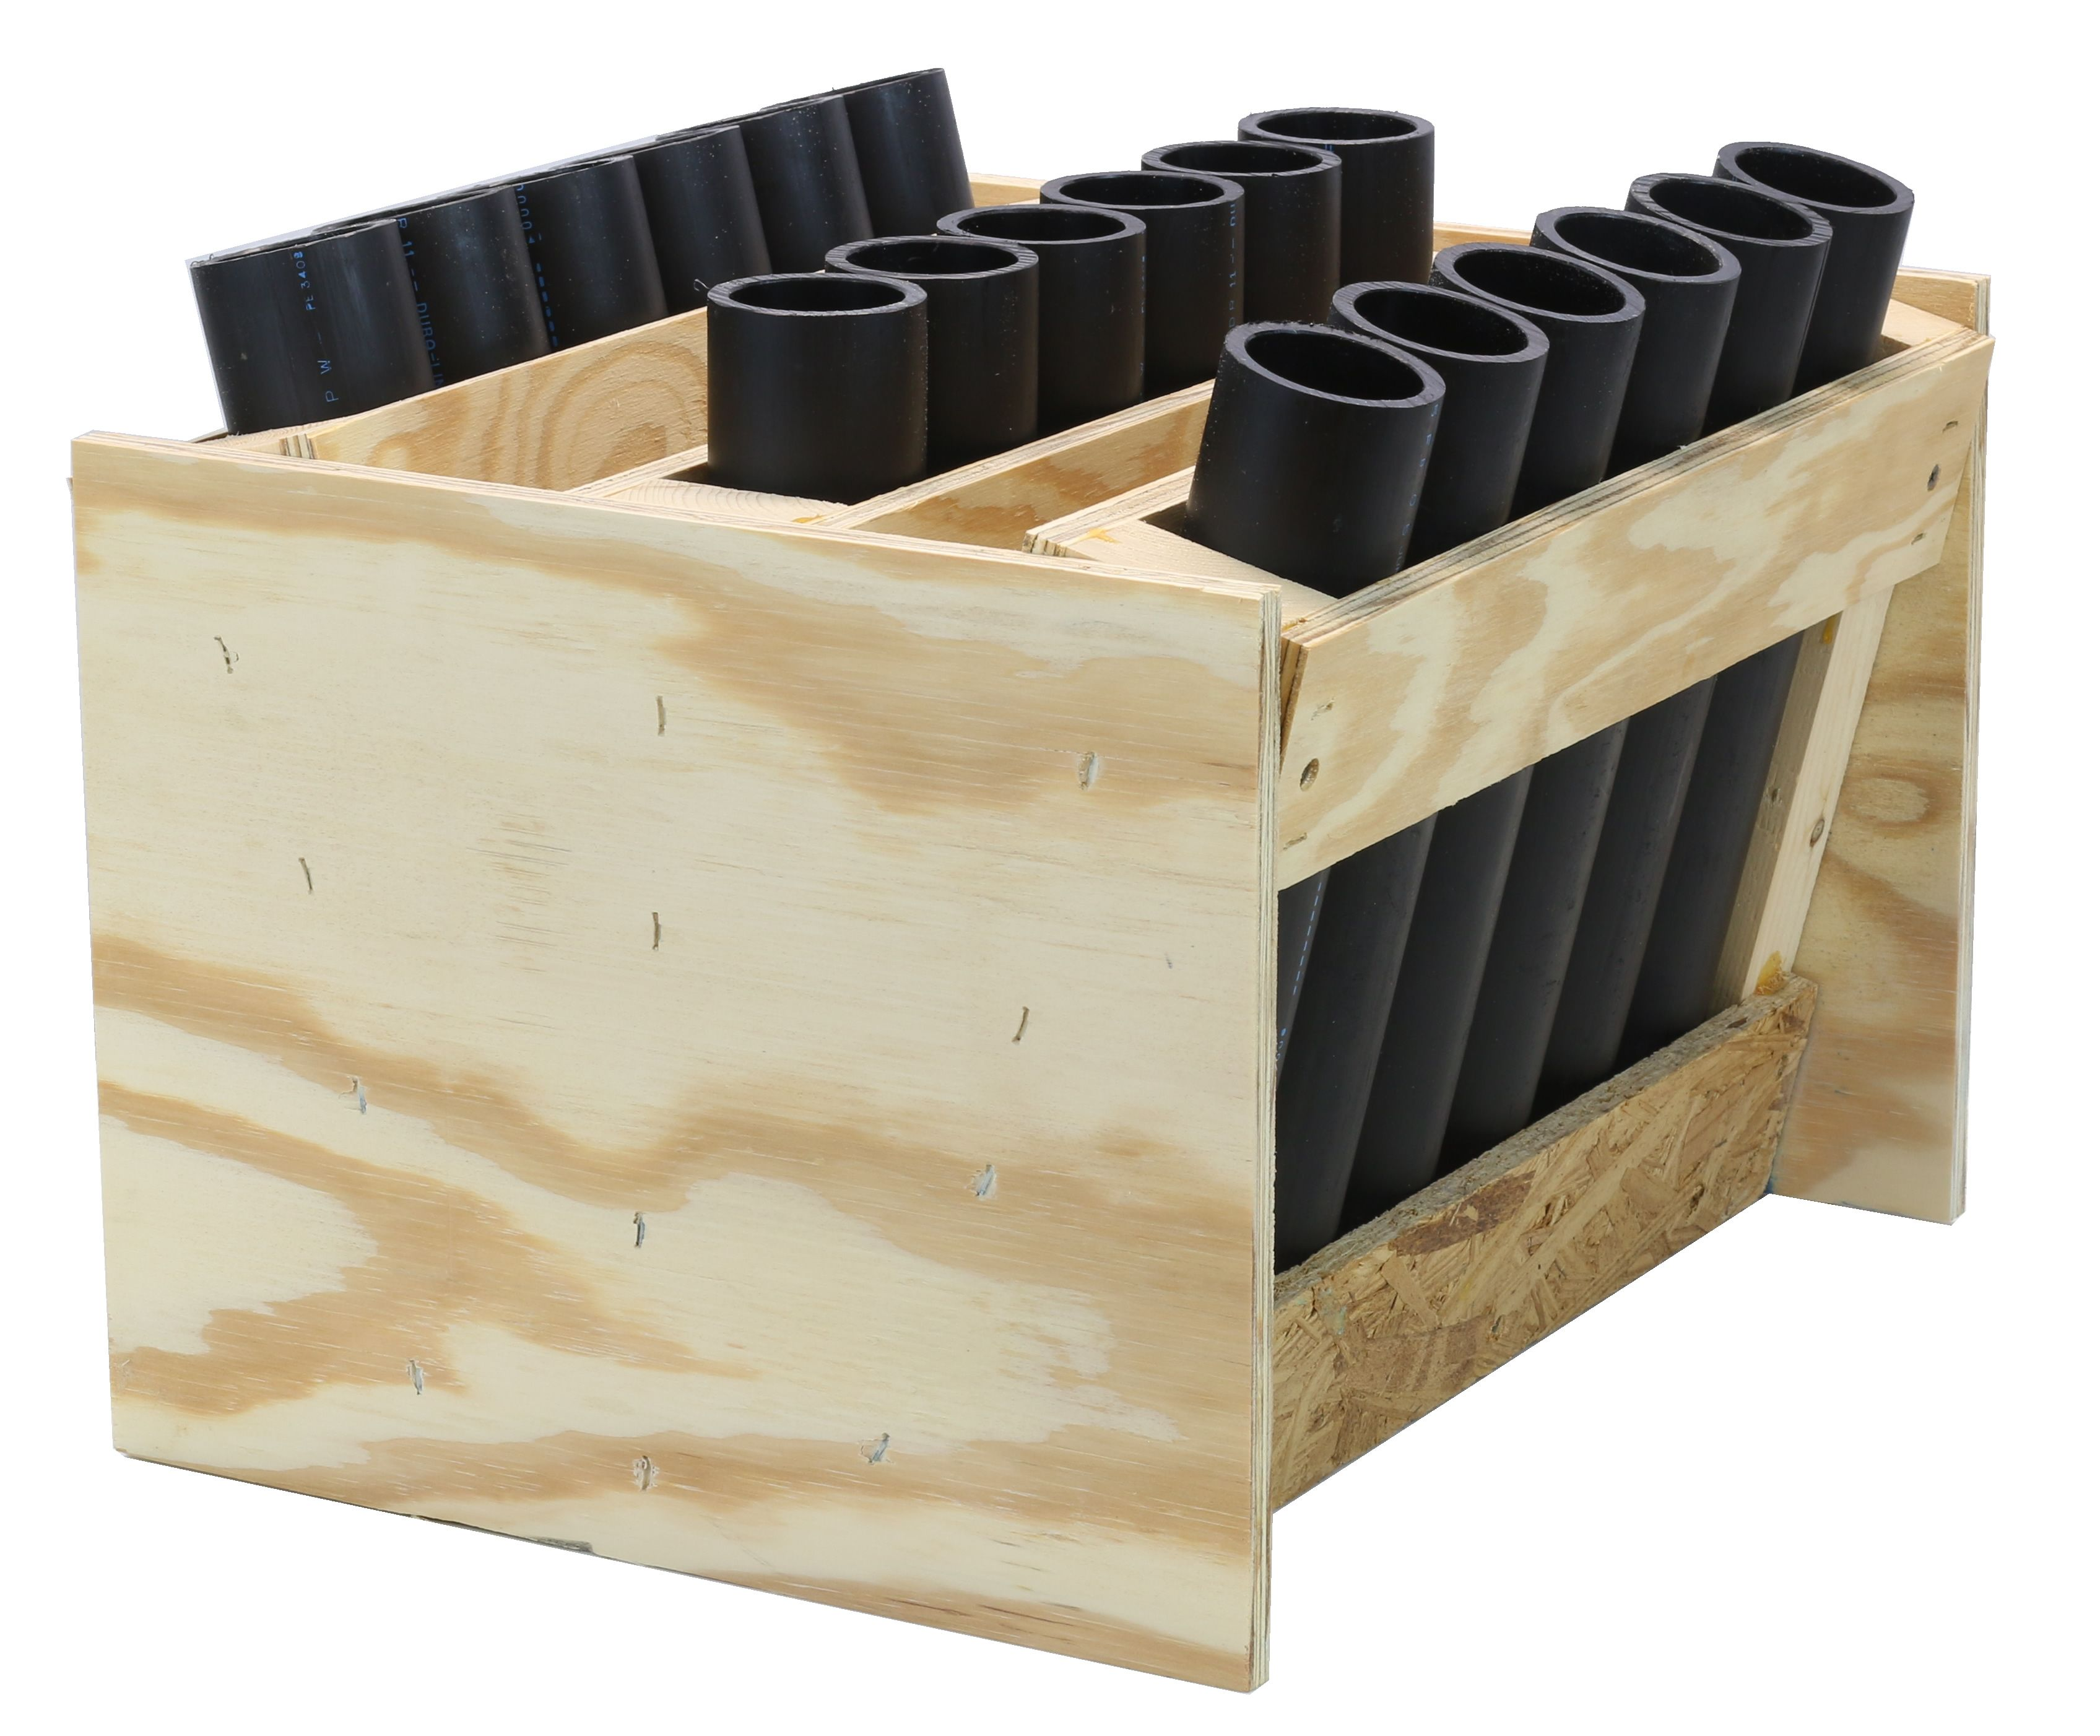 18-shot consumer mortar rack  Comes with 18 HDPE DR11 12